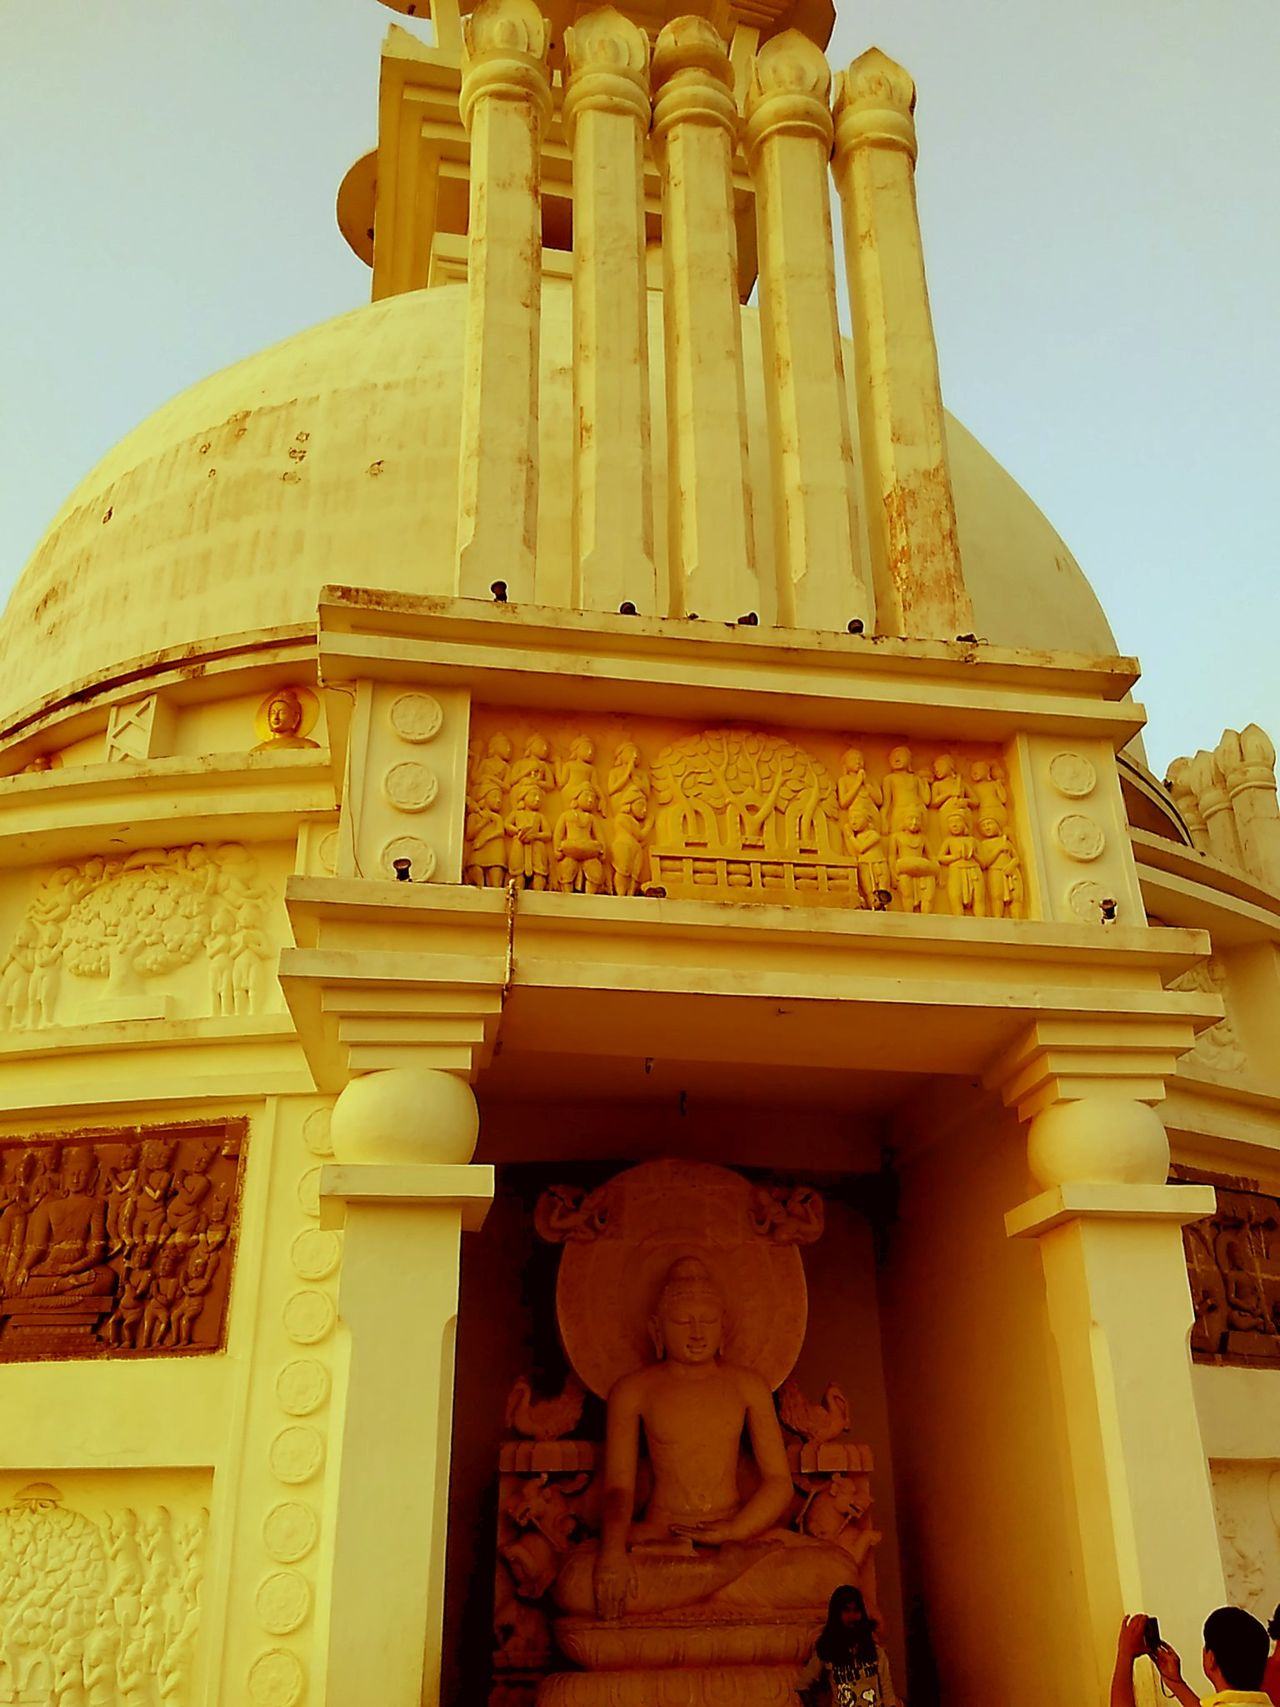 Yellow Temple Budhism Buddha Statue Travel Photography Pride Of India.